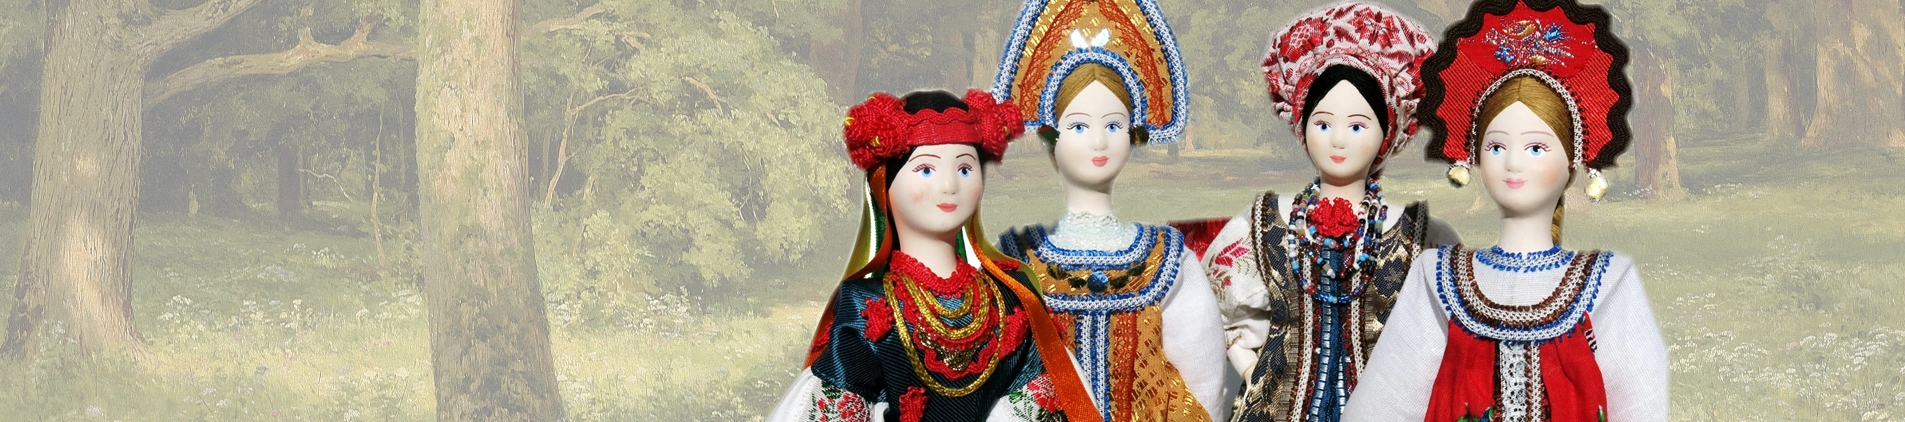 Handmade Russian gifts, porcelain and cloth dolls